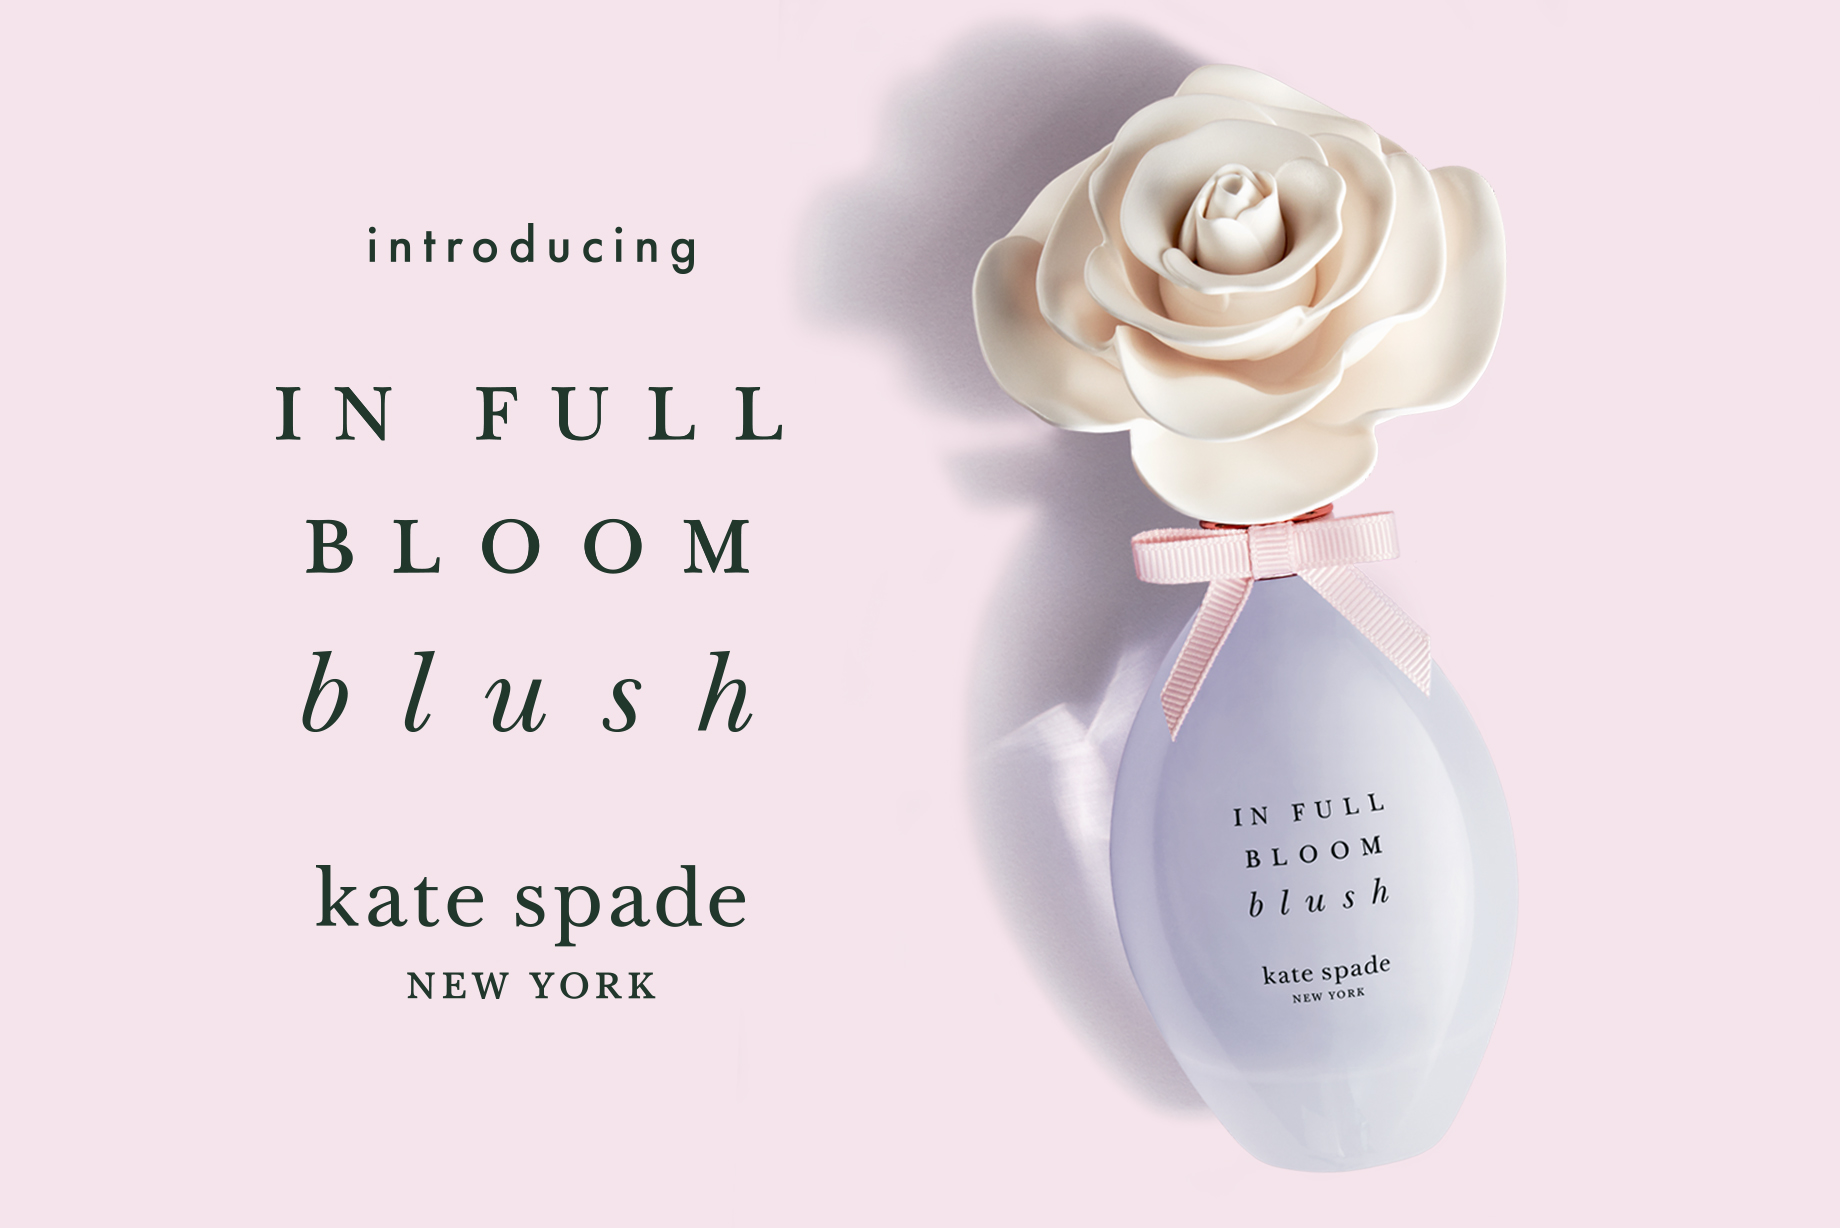 May 2019 Perfume of the Month: kate spade new york in full bloom blush